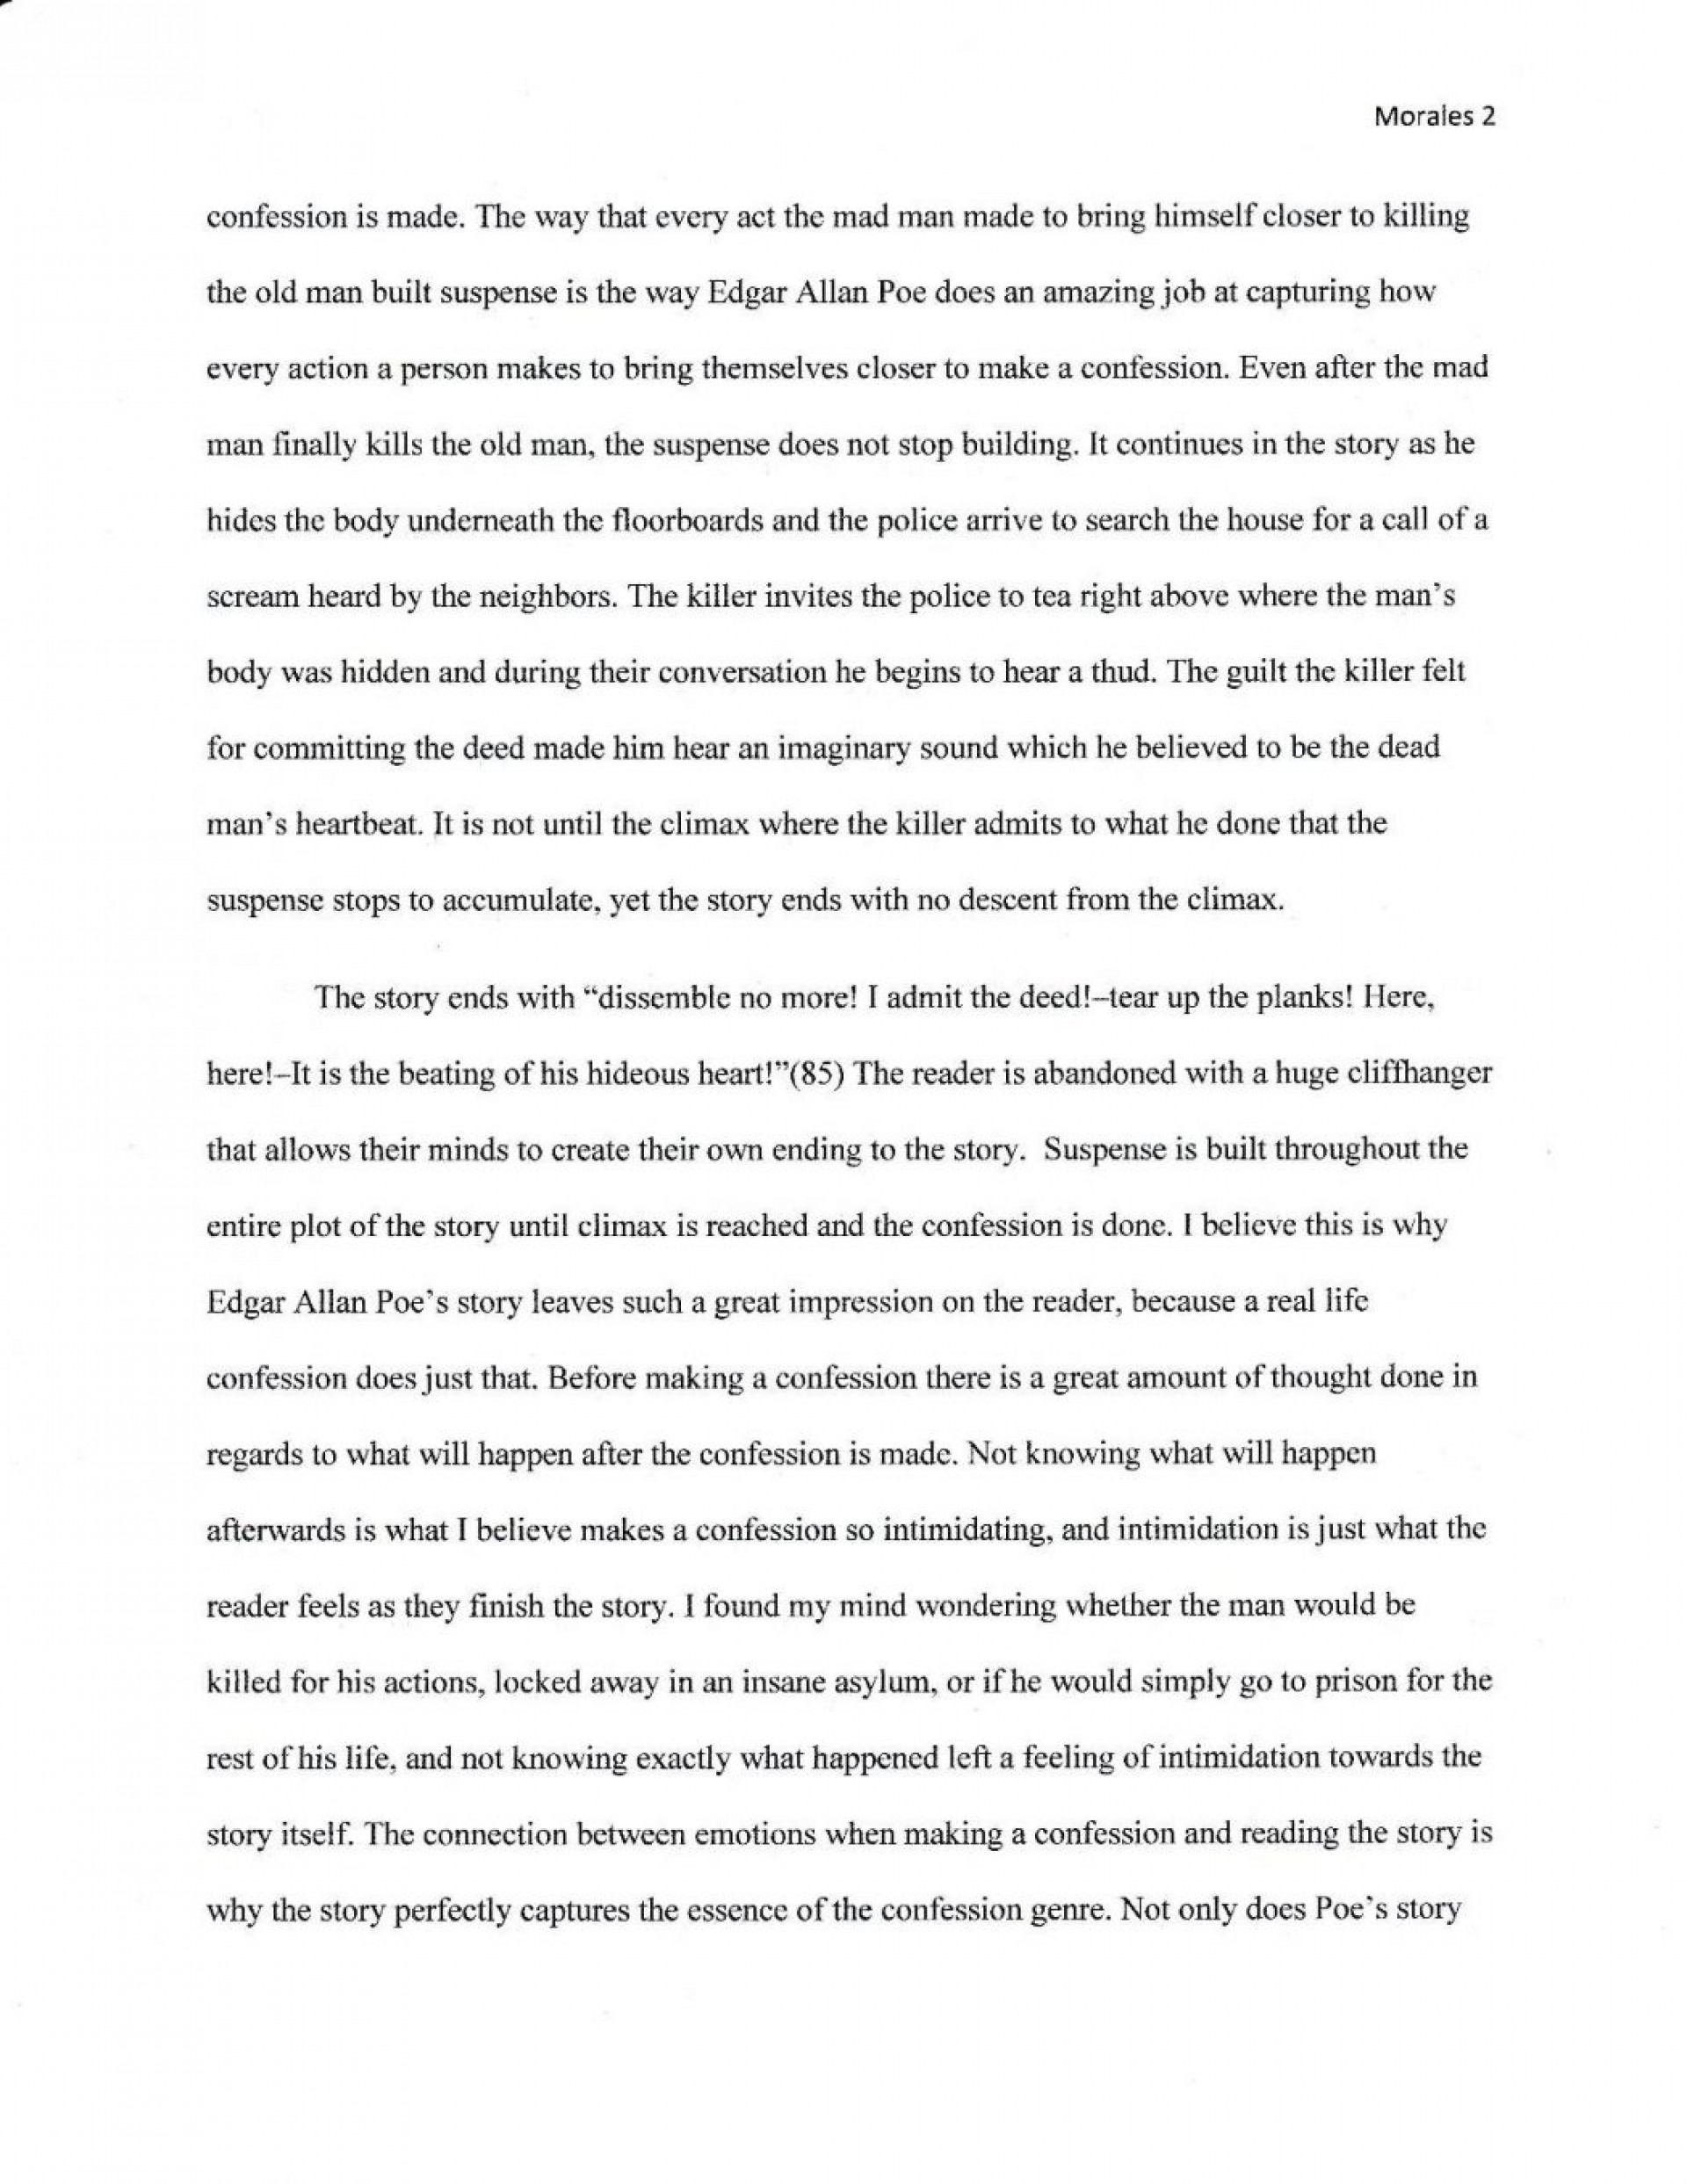 001 Edgar Allen Poe Essay Help Cant Do My Analyzing The Bells An Merged Document 3 Pag On Allan Style Of Writing 1048x1357 Stirring Raven Topics Titles Explanation 1920